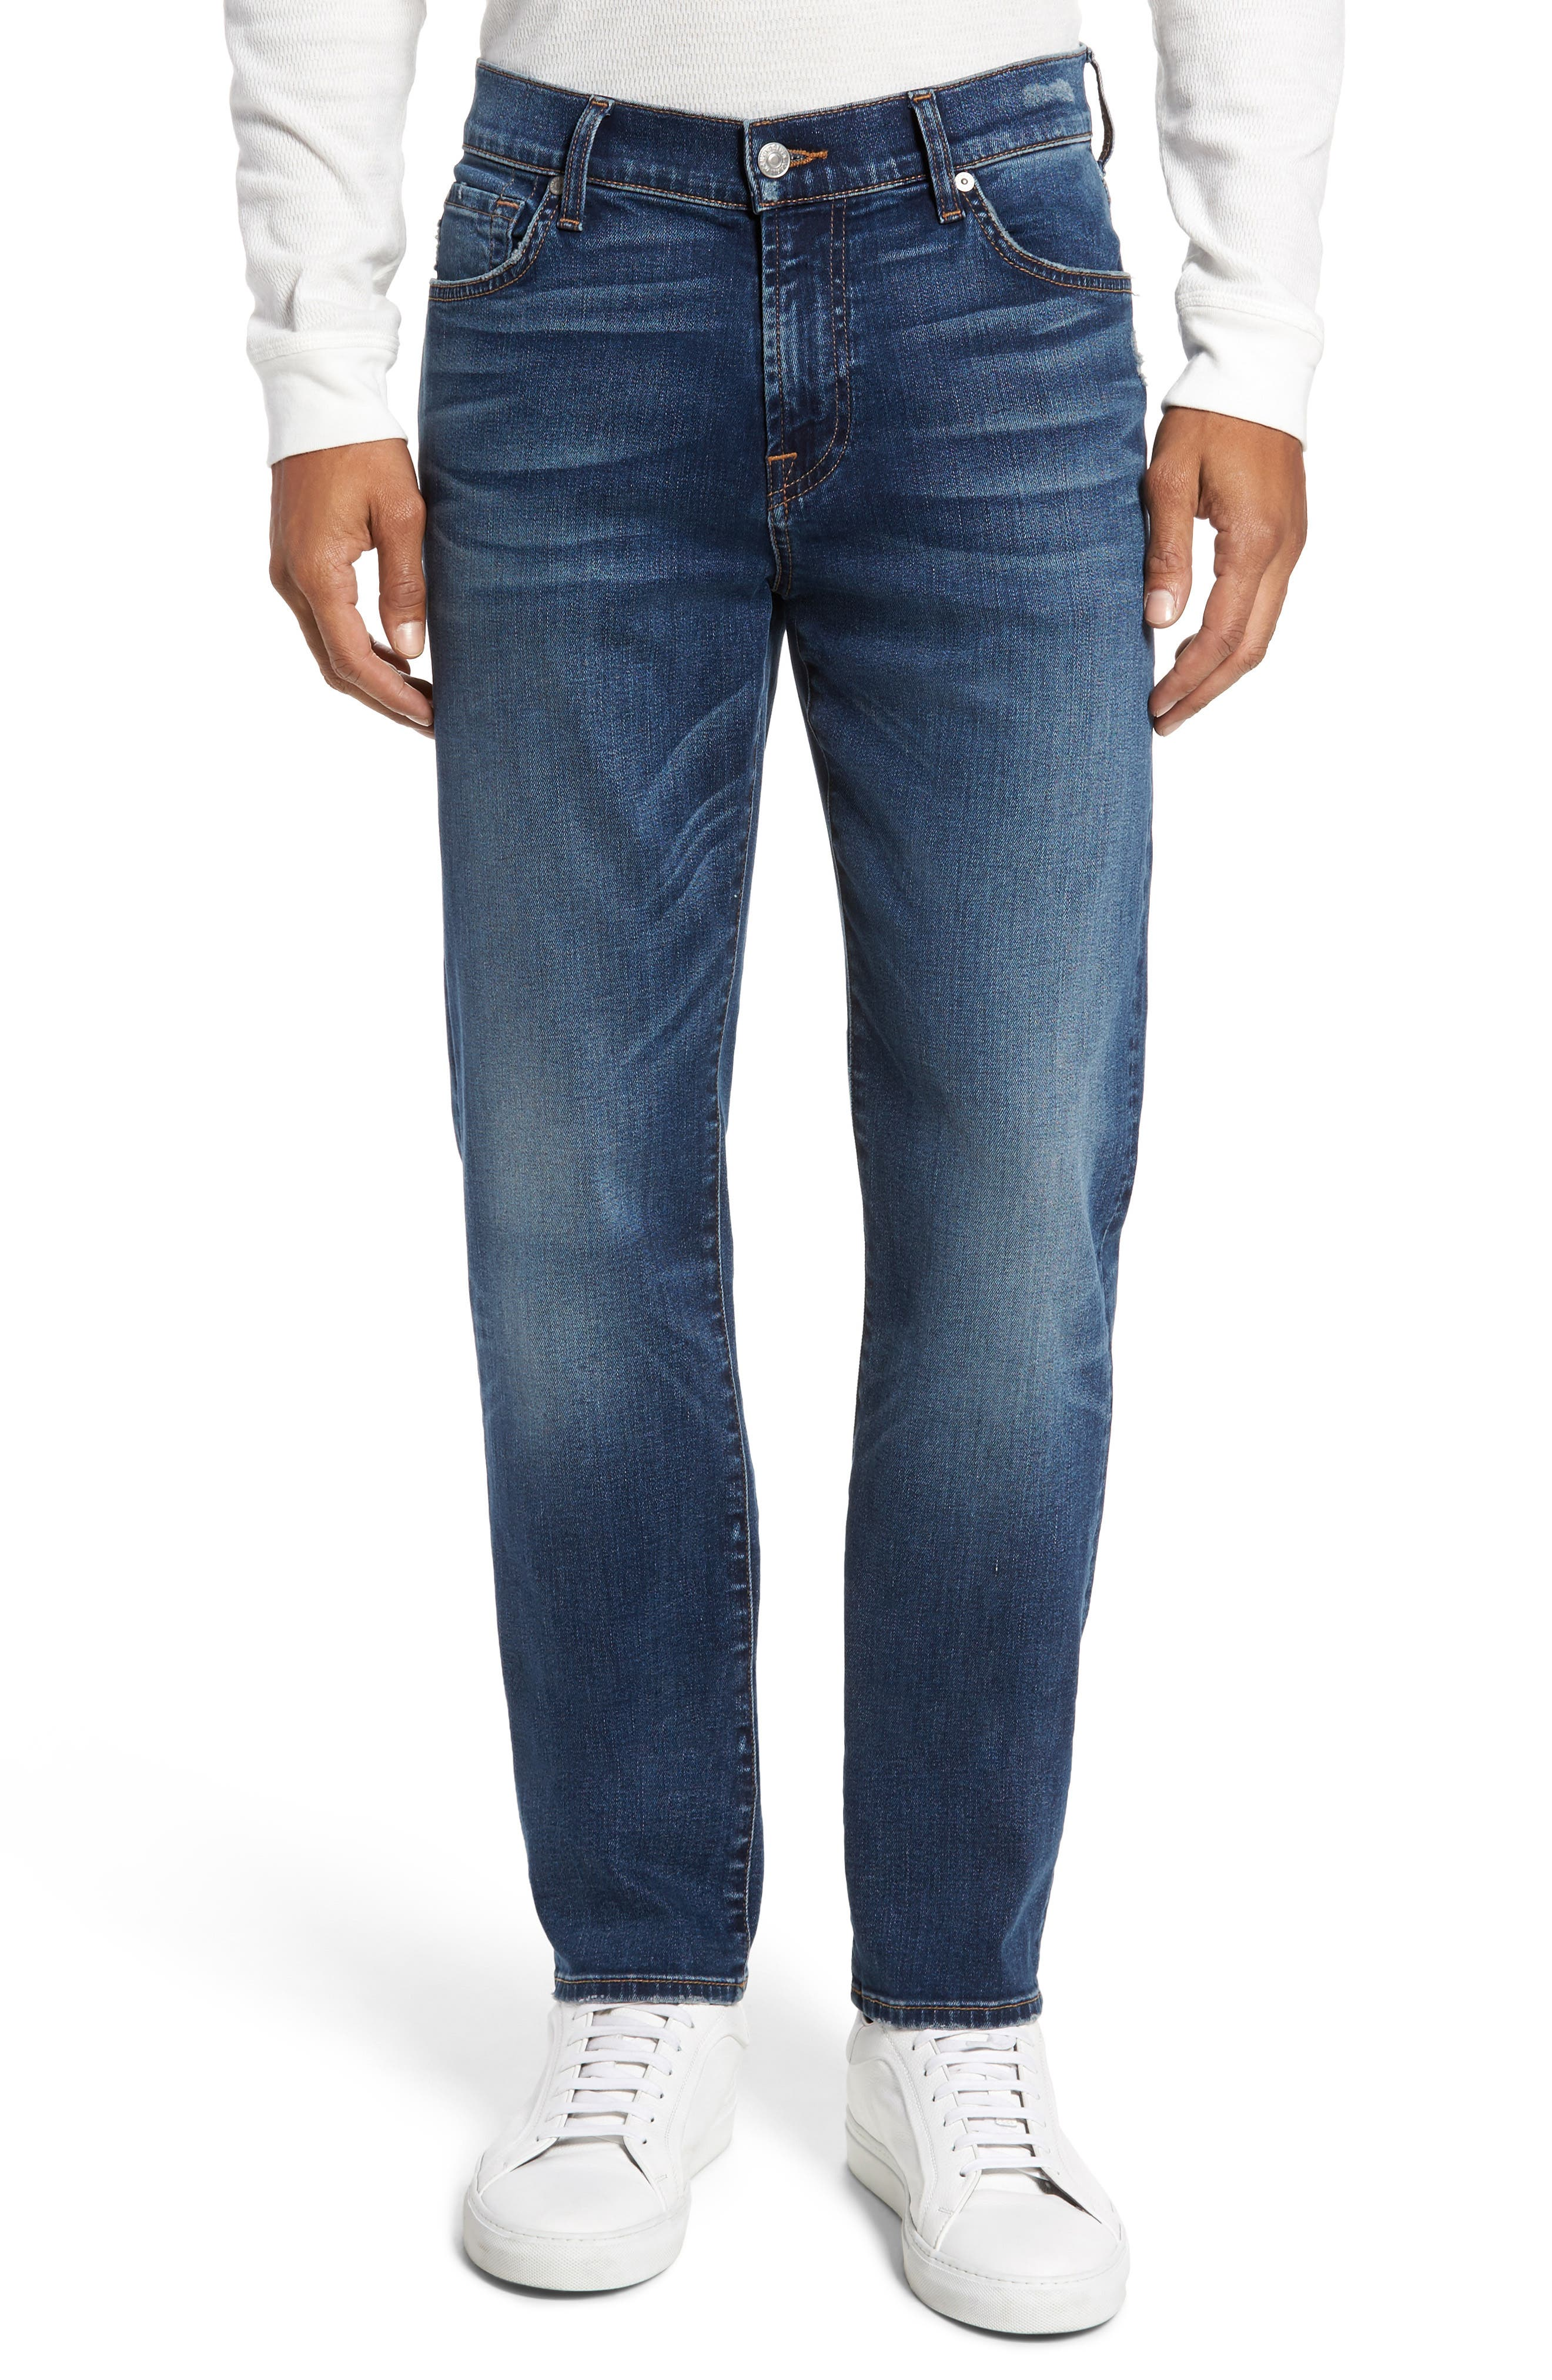 Alternate Image 1 Selected - 7 For All Mankind® Slimmy Slim Fit Jeans (Union)